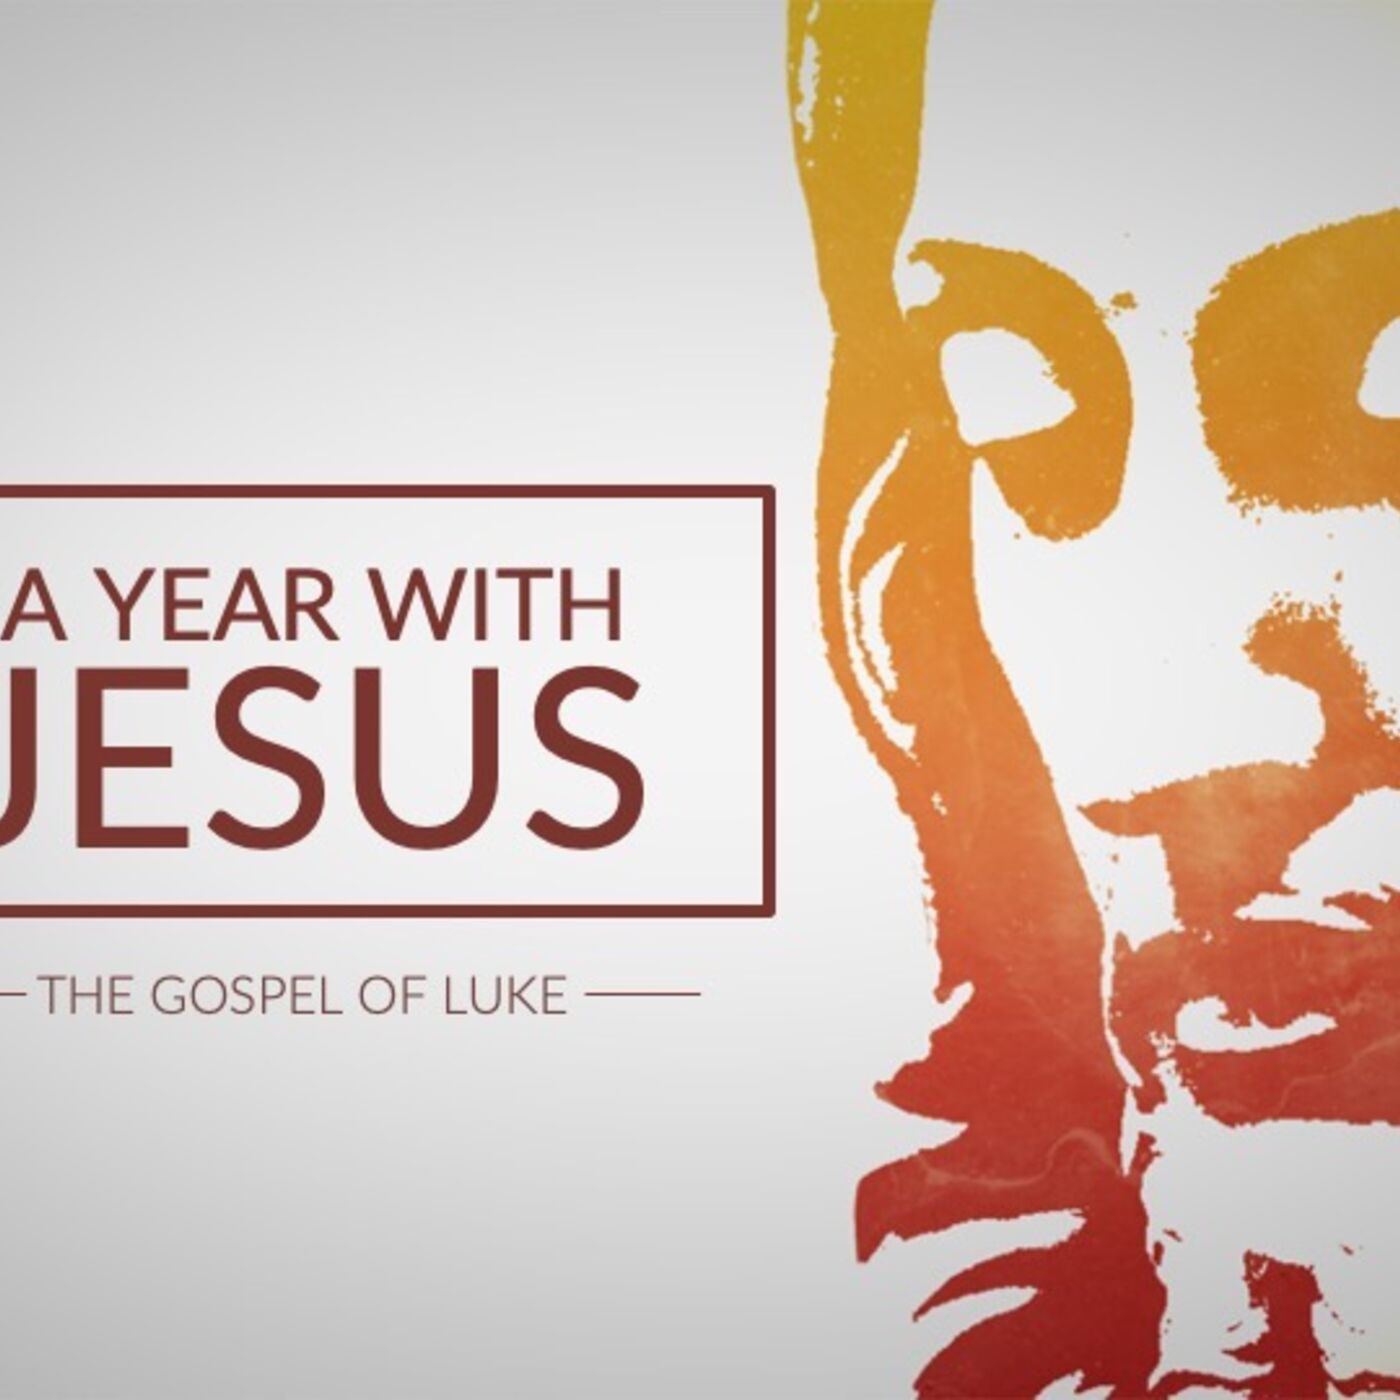 A Year With Jesus: The Failure Of Israel's Leadership (Luke 11:37-54)